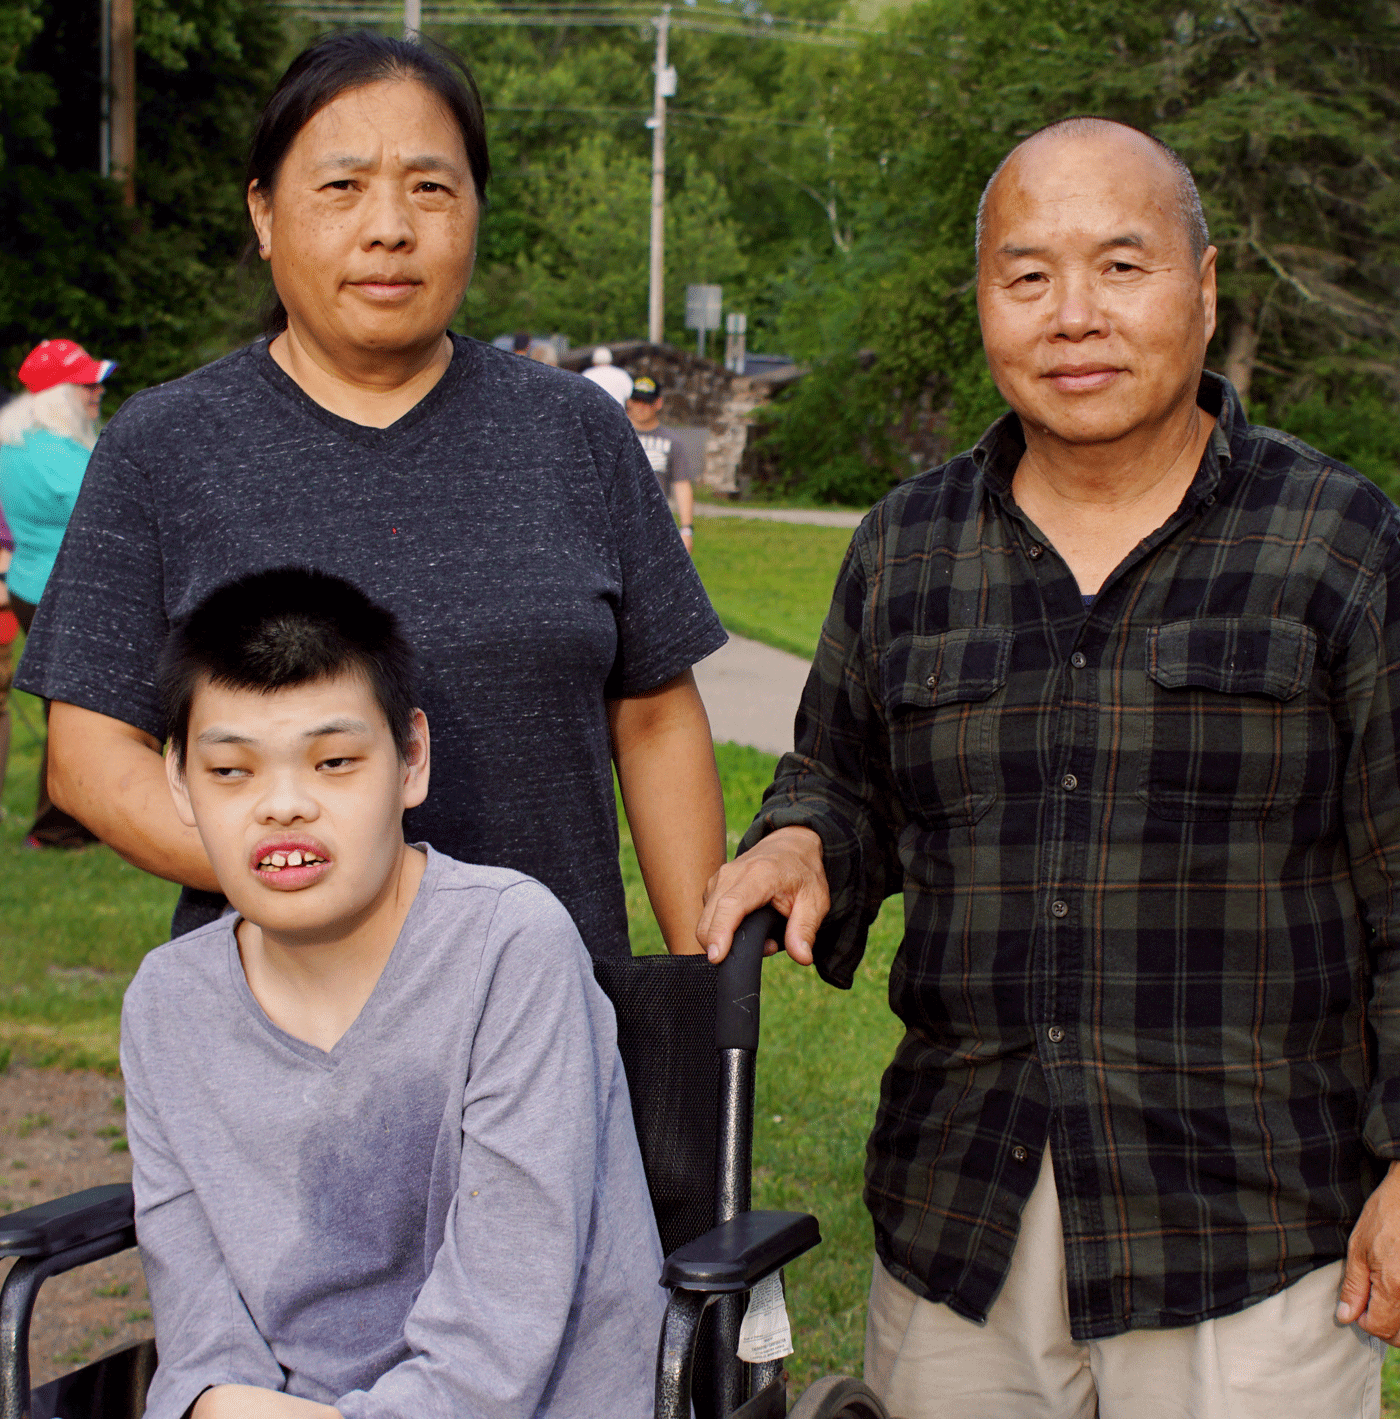 Two older people pose with a younger person in a wheelchair.